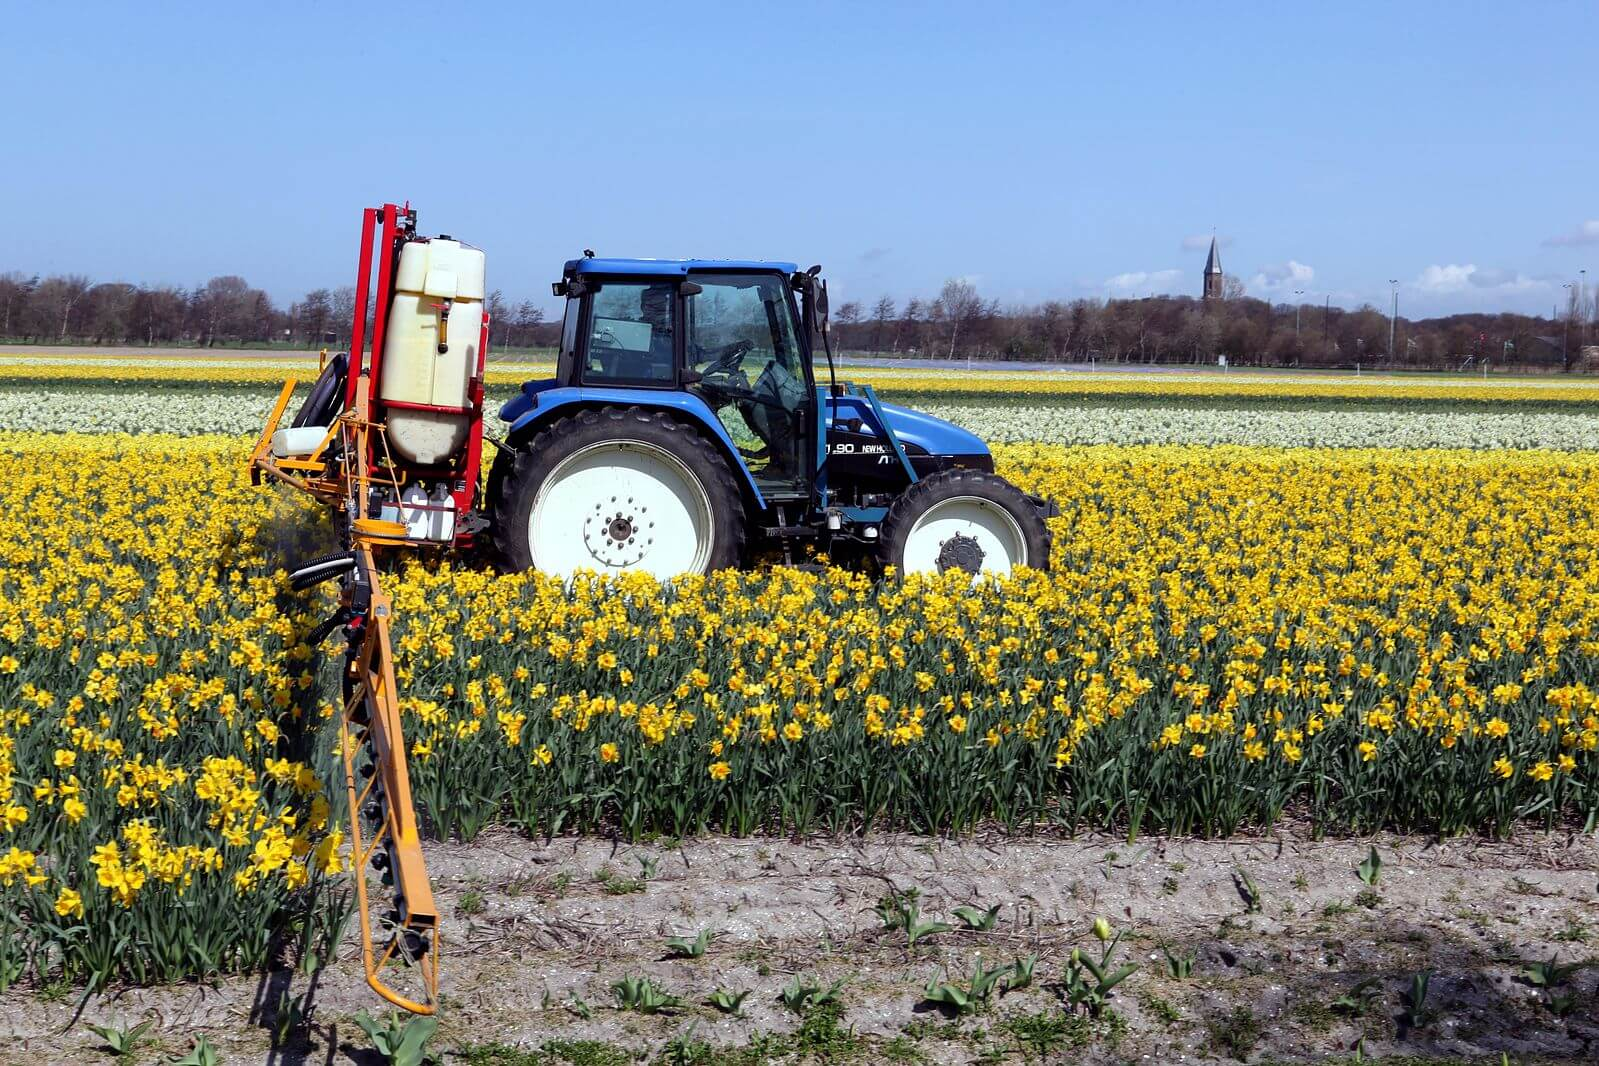 New_Holland_field_sprayer-pesticieds-neonics-farmers-bees